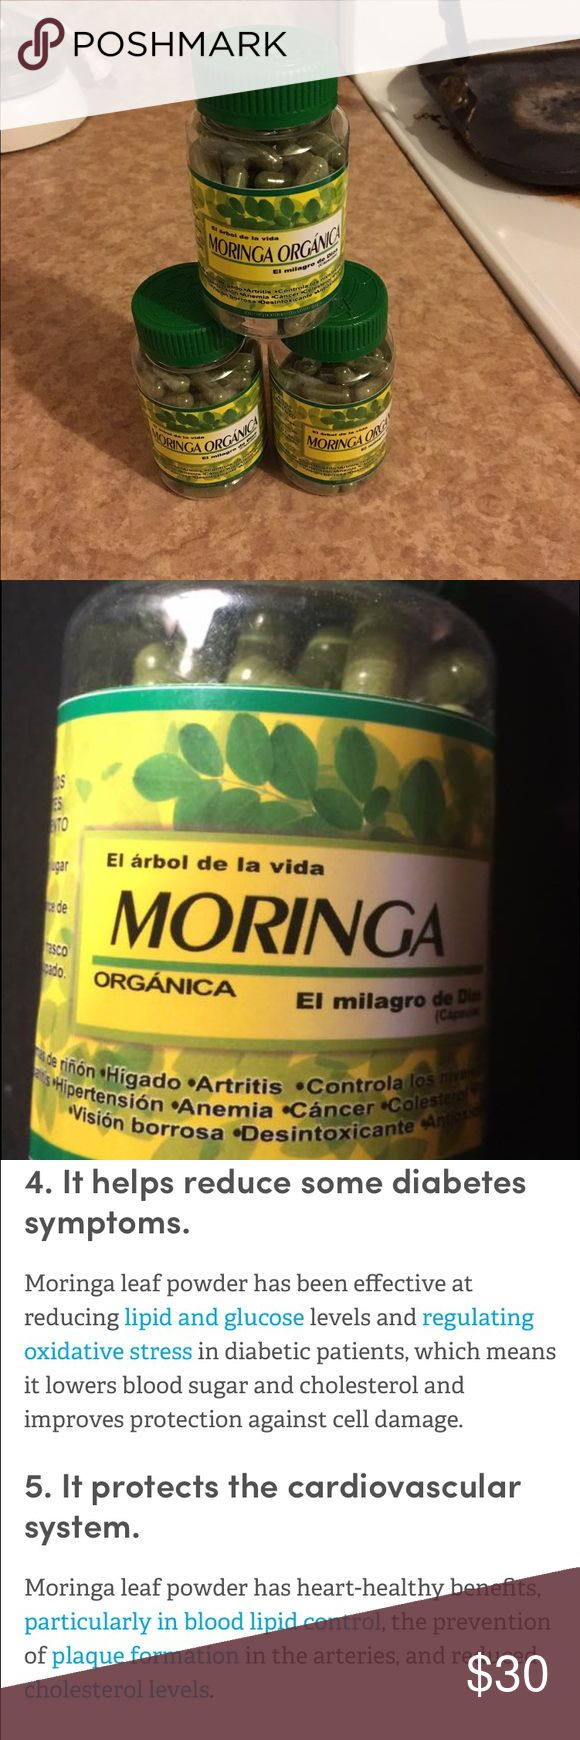 Moringa capsules 💯organic 90 capsulesof moringa  💯organic and natural it help prevent and give the cure of many of health problems people has like help control the high sugar level on the blood reduce the cholesterol,hepatitis, weight problems, anemia cancer, artrithis and many more take 2 capsules per day with plenty water Organic  Other